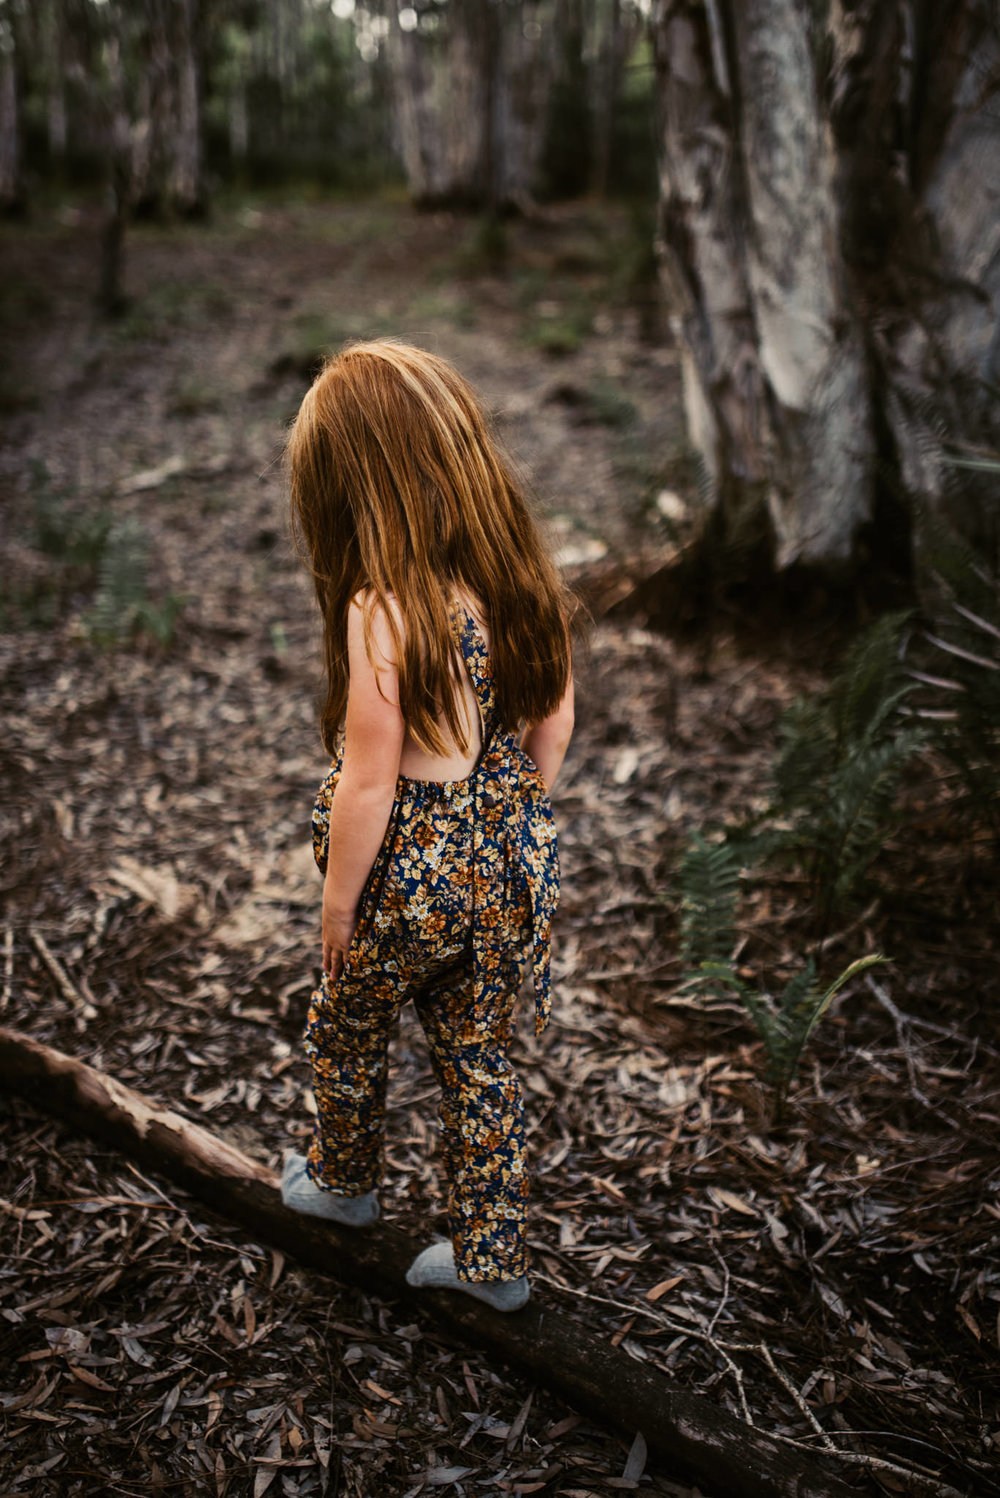 twyla jones photography - treasure coast florida - childrens adventure clothing commercial shoot--38.jpg